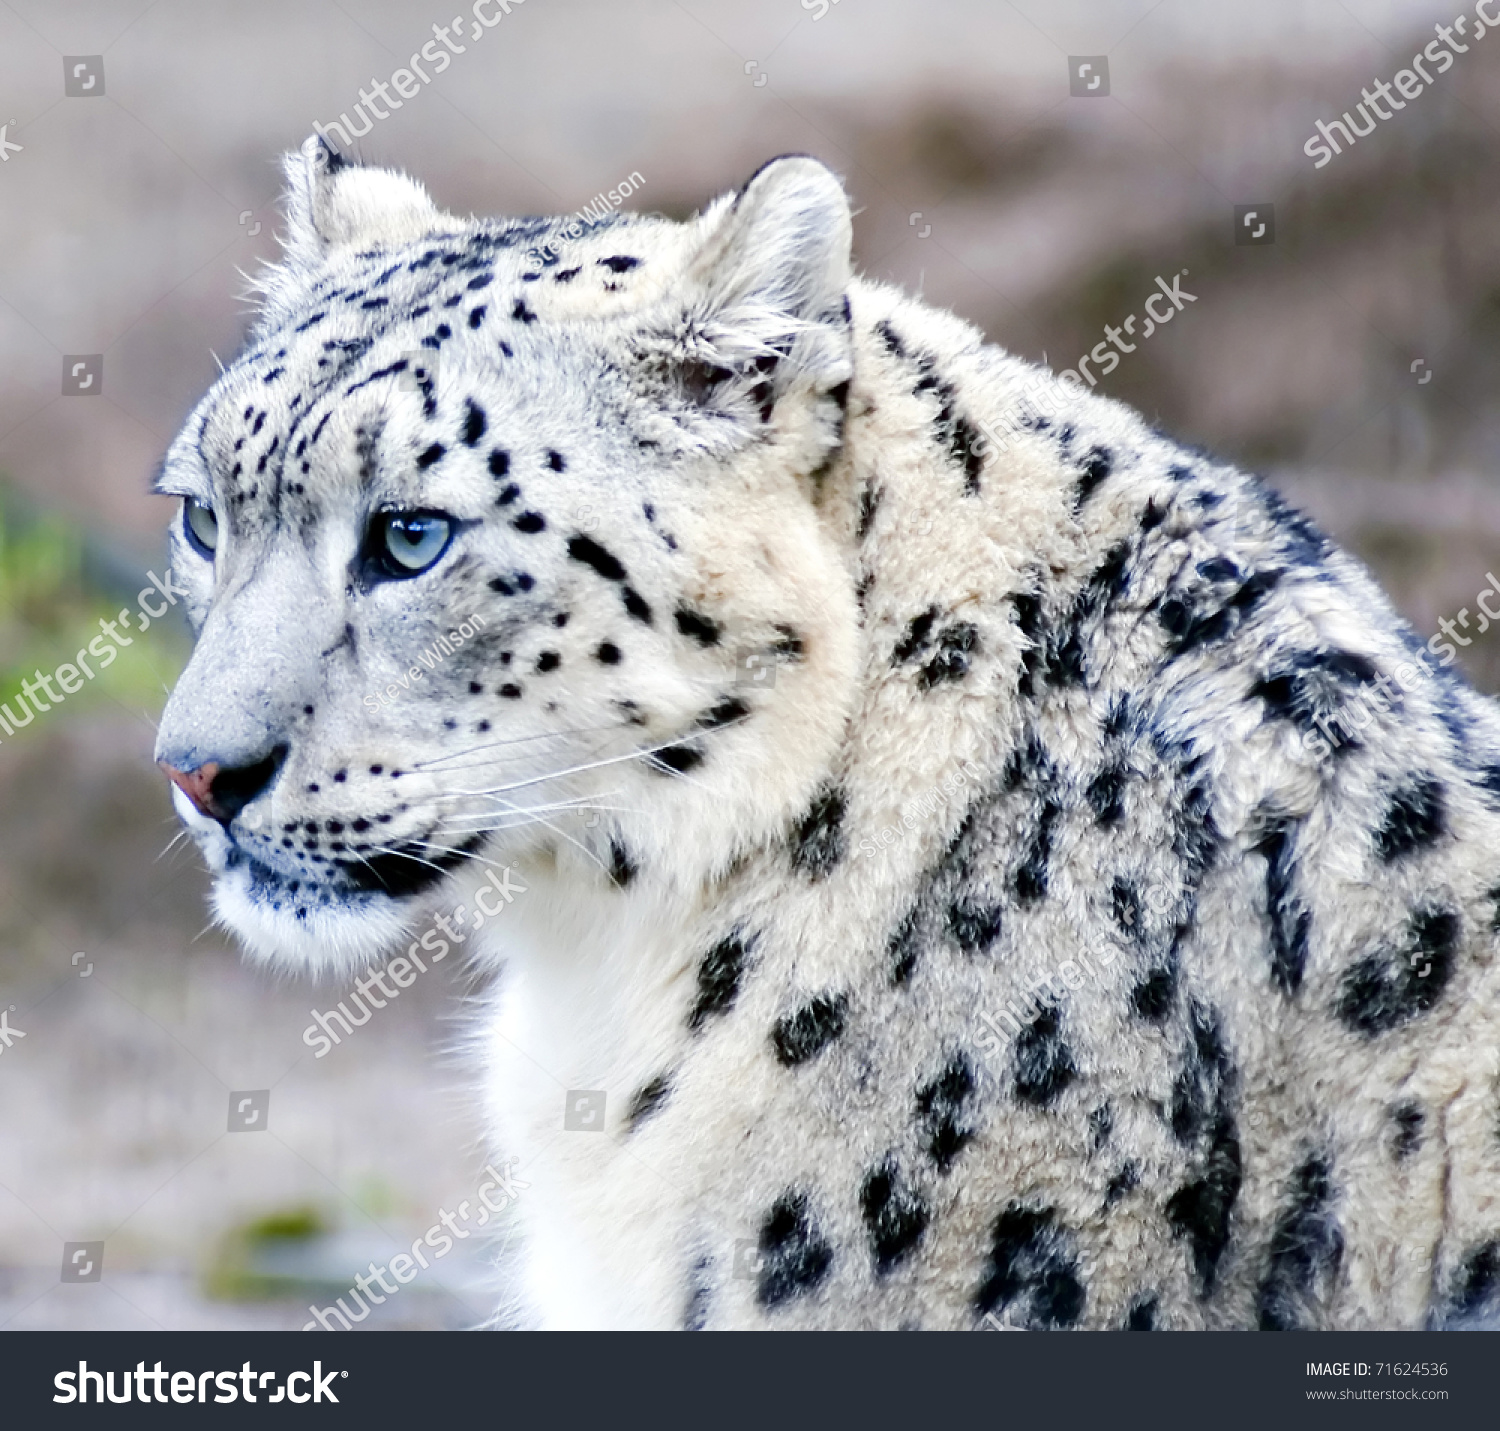 Snow leopard face side - photo#18